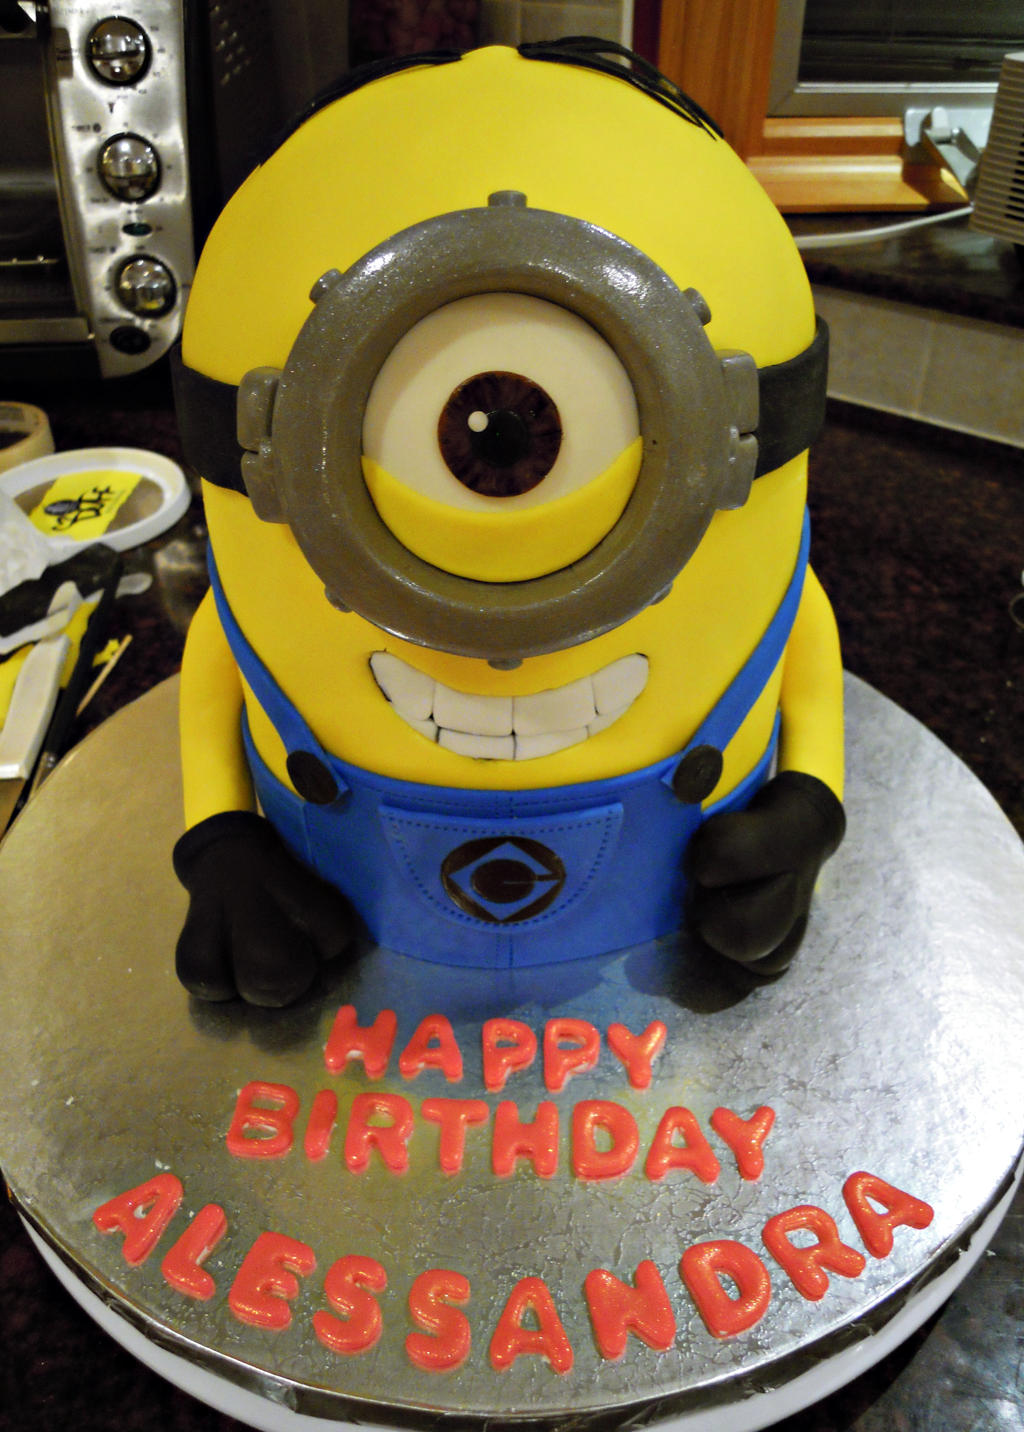 Minion Stuart Cake by cake4thought on DeviantArt